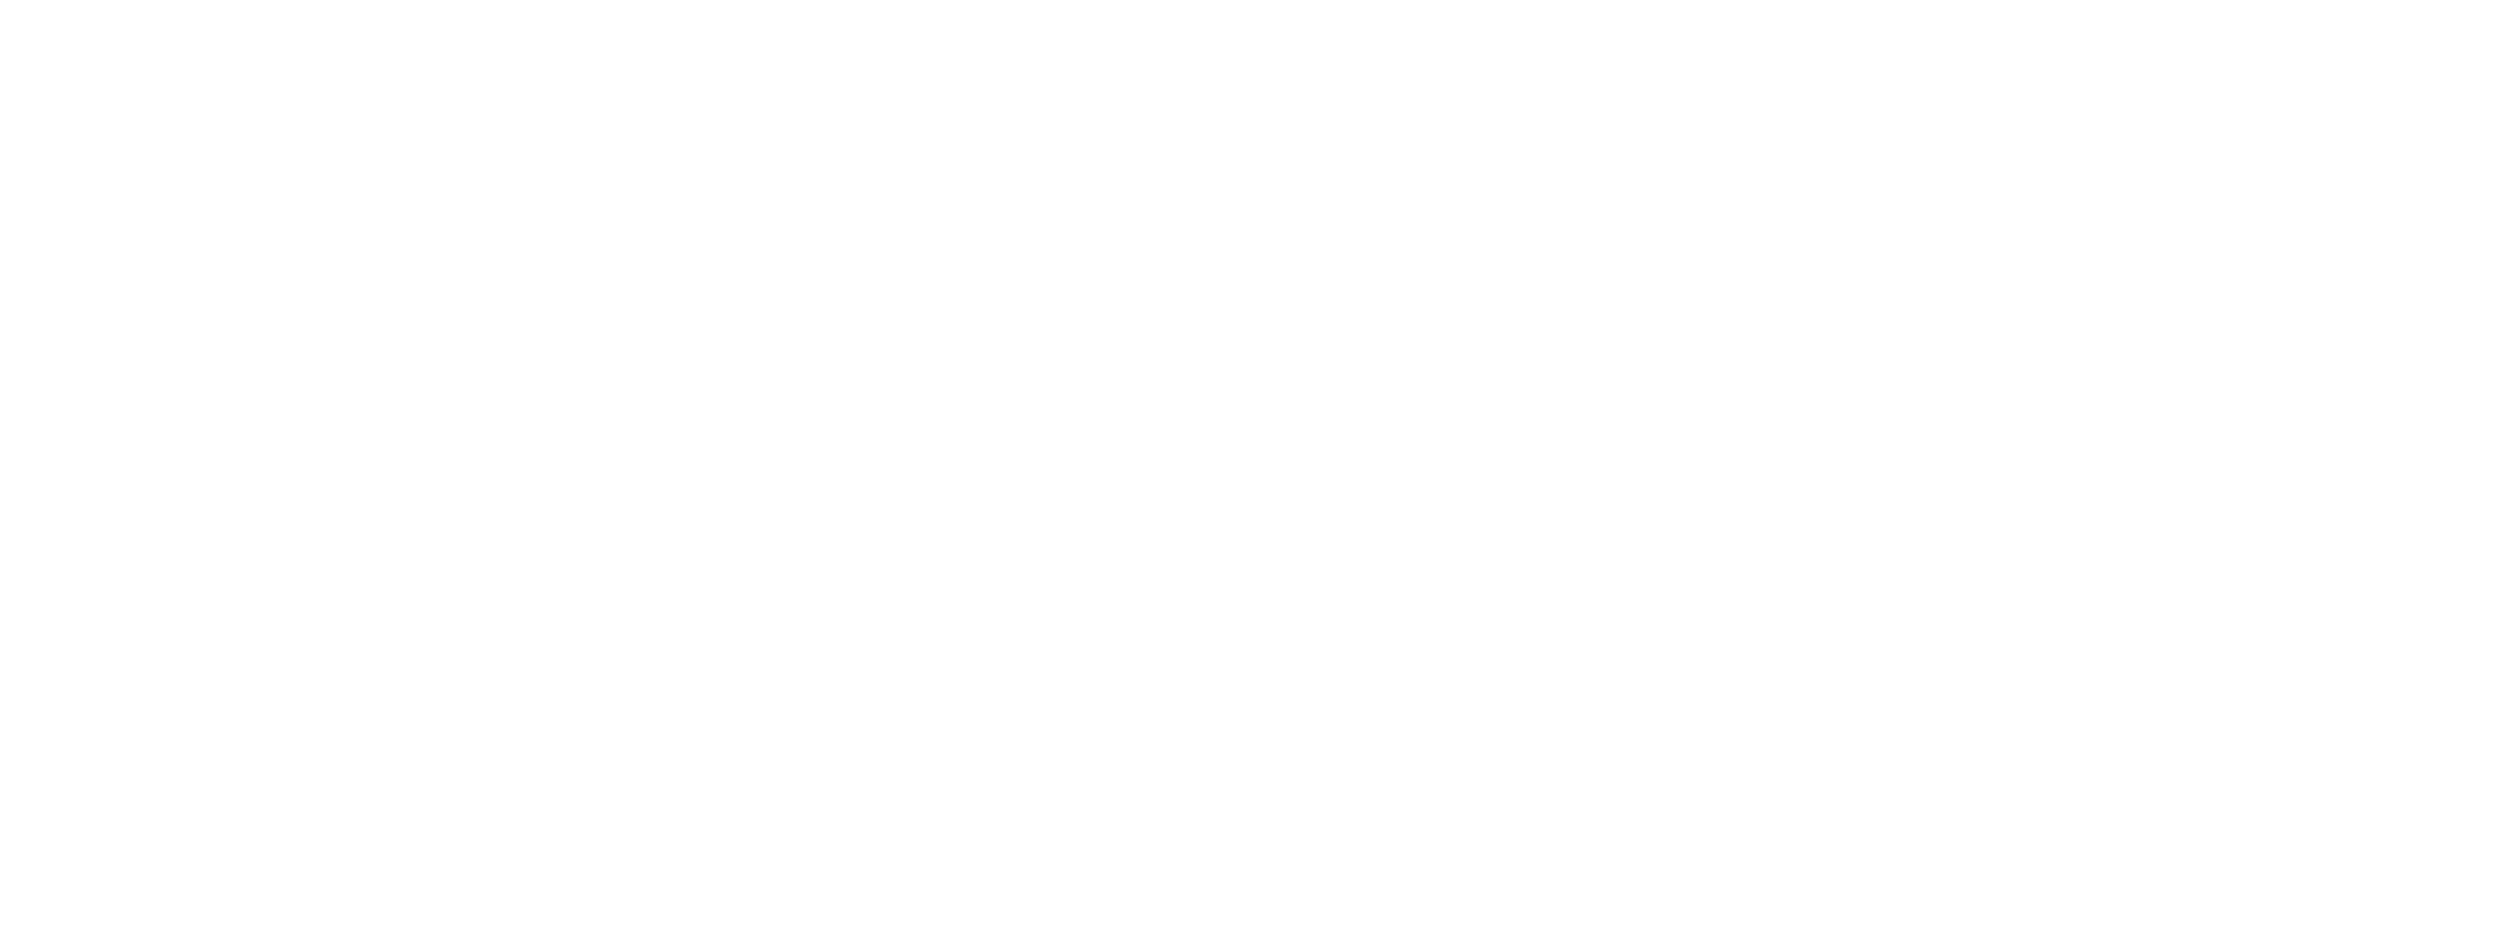 We see your real estate brand as being a competitive advantage.